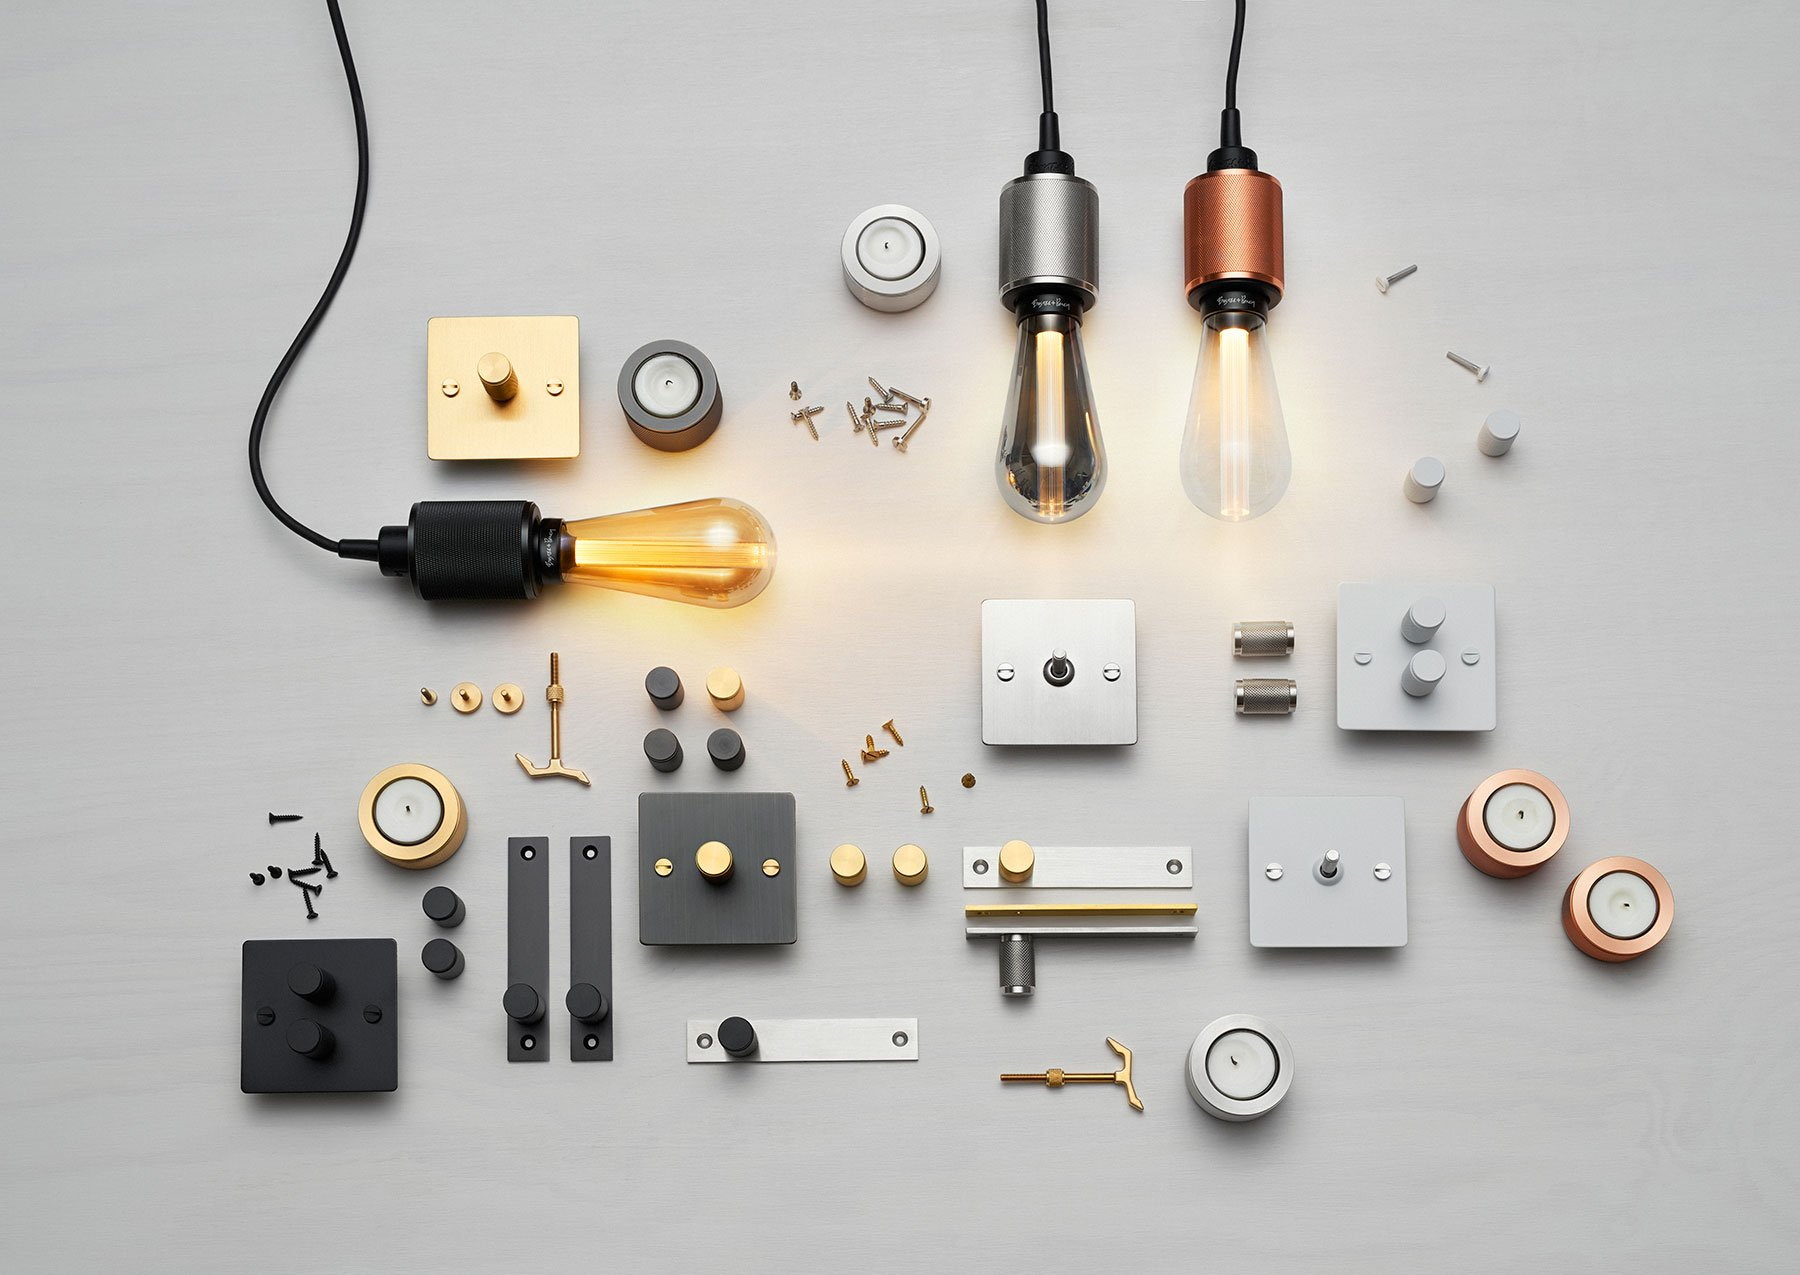 buster-punch-unveils-the-worlds-first-designer-led-bulb-1